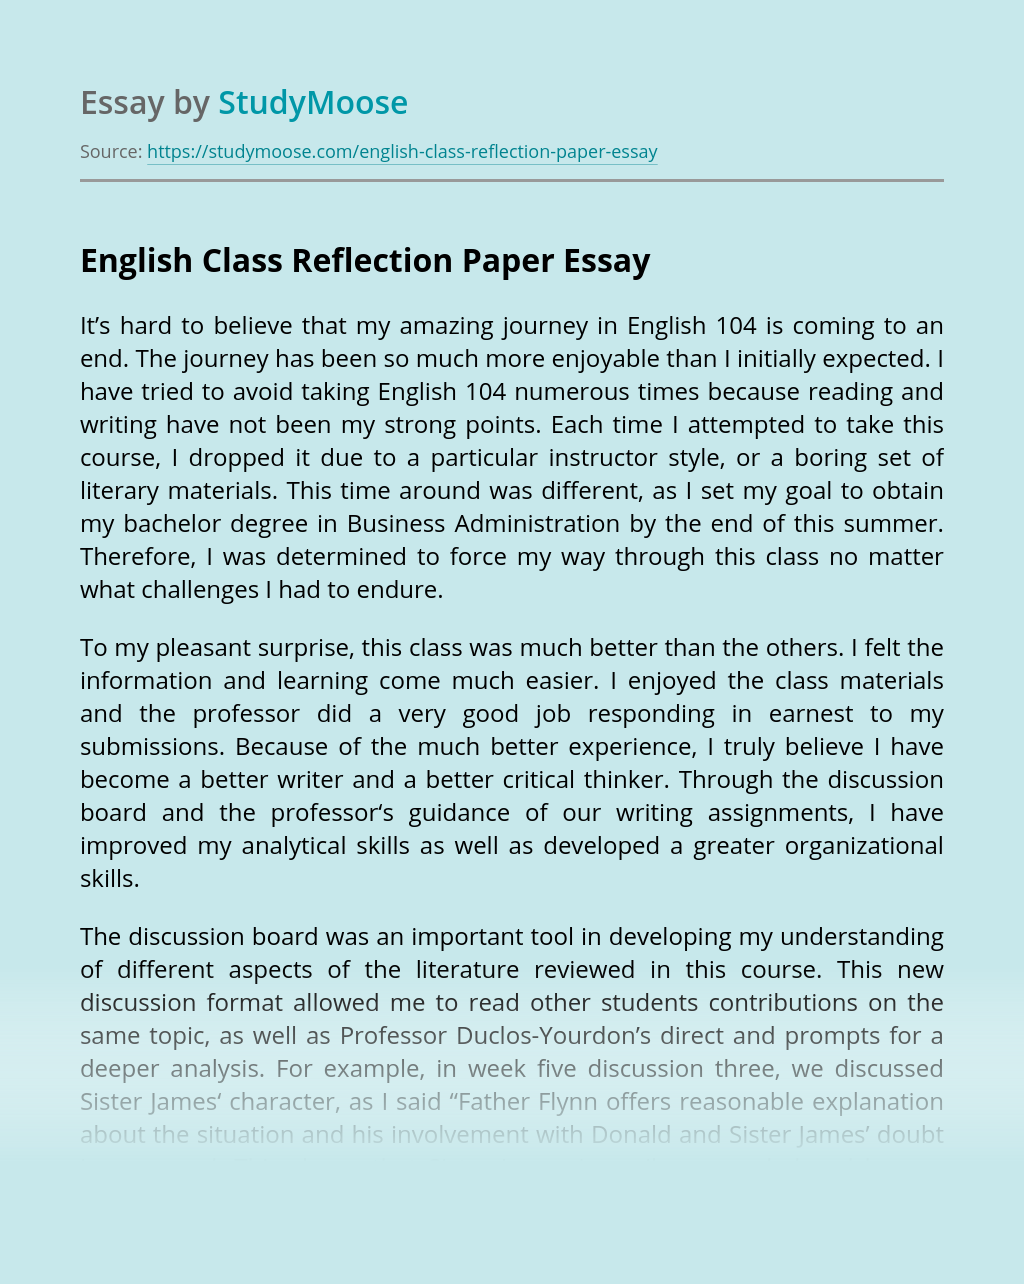 English Class Reflection Paper